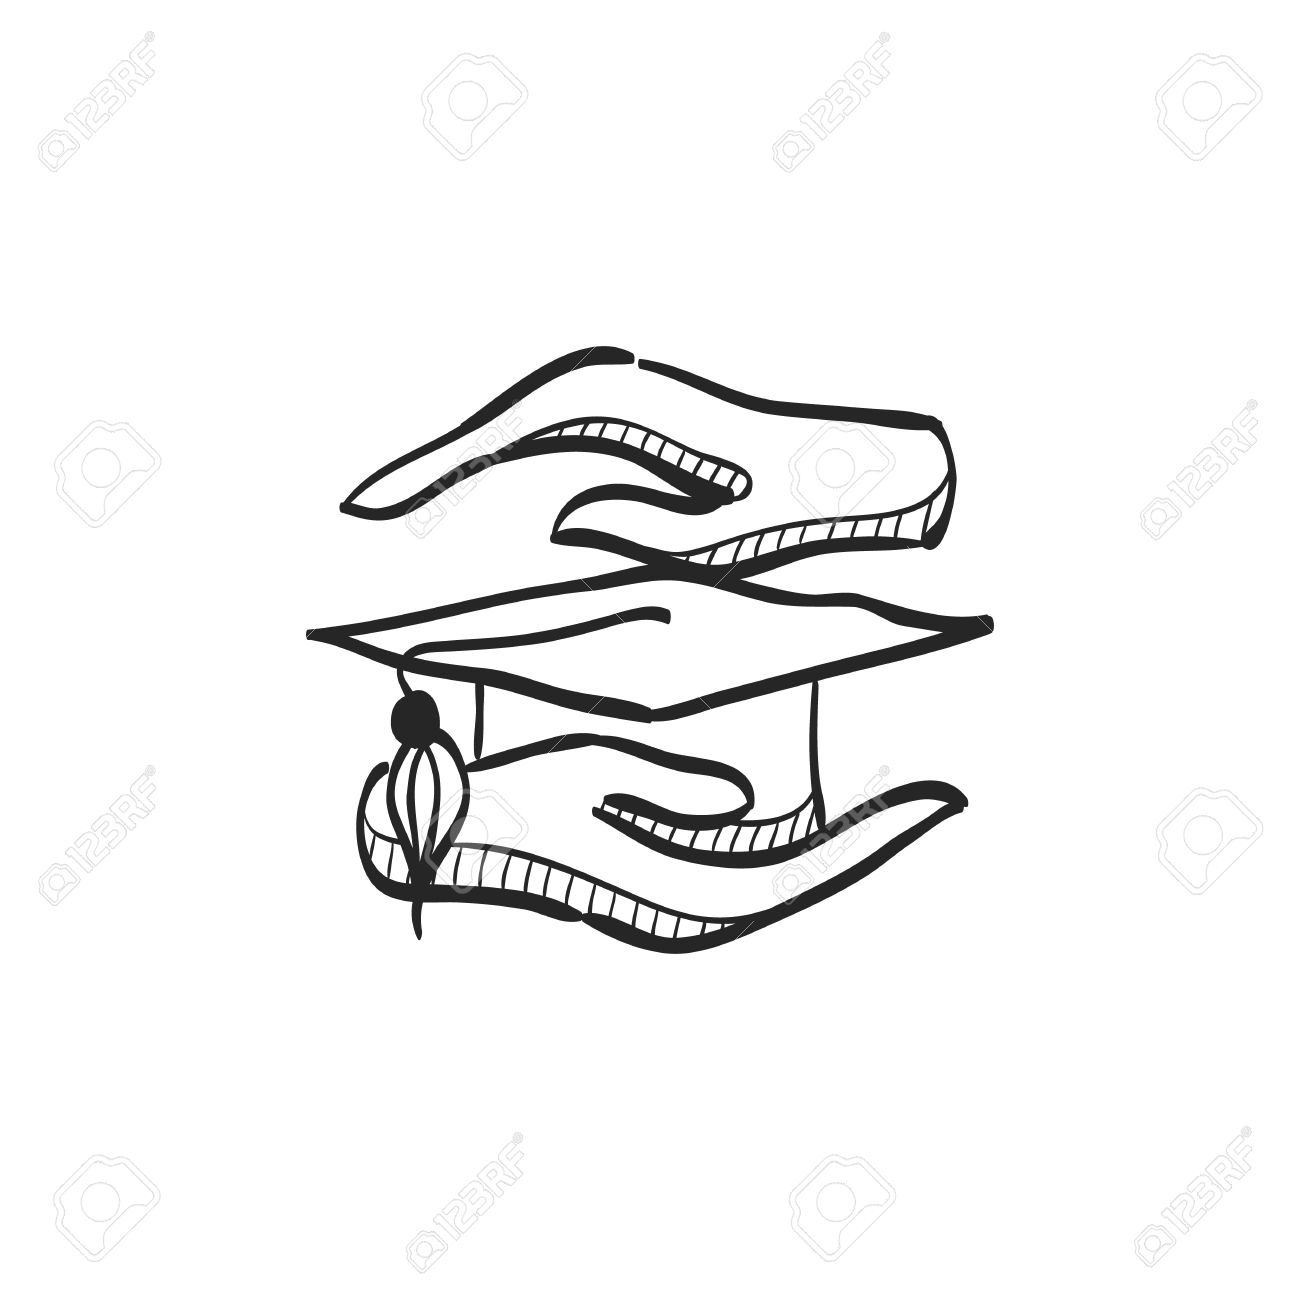 hand holding diploma icon in doodle sketch lines education school  hand holding diploma icon in doodle sketch lines education school protection security graduate diploma insurance